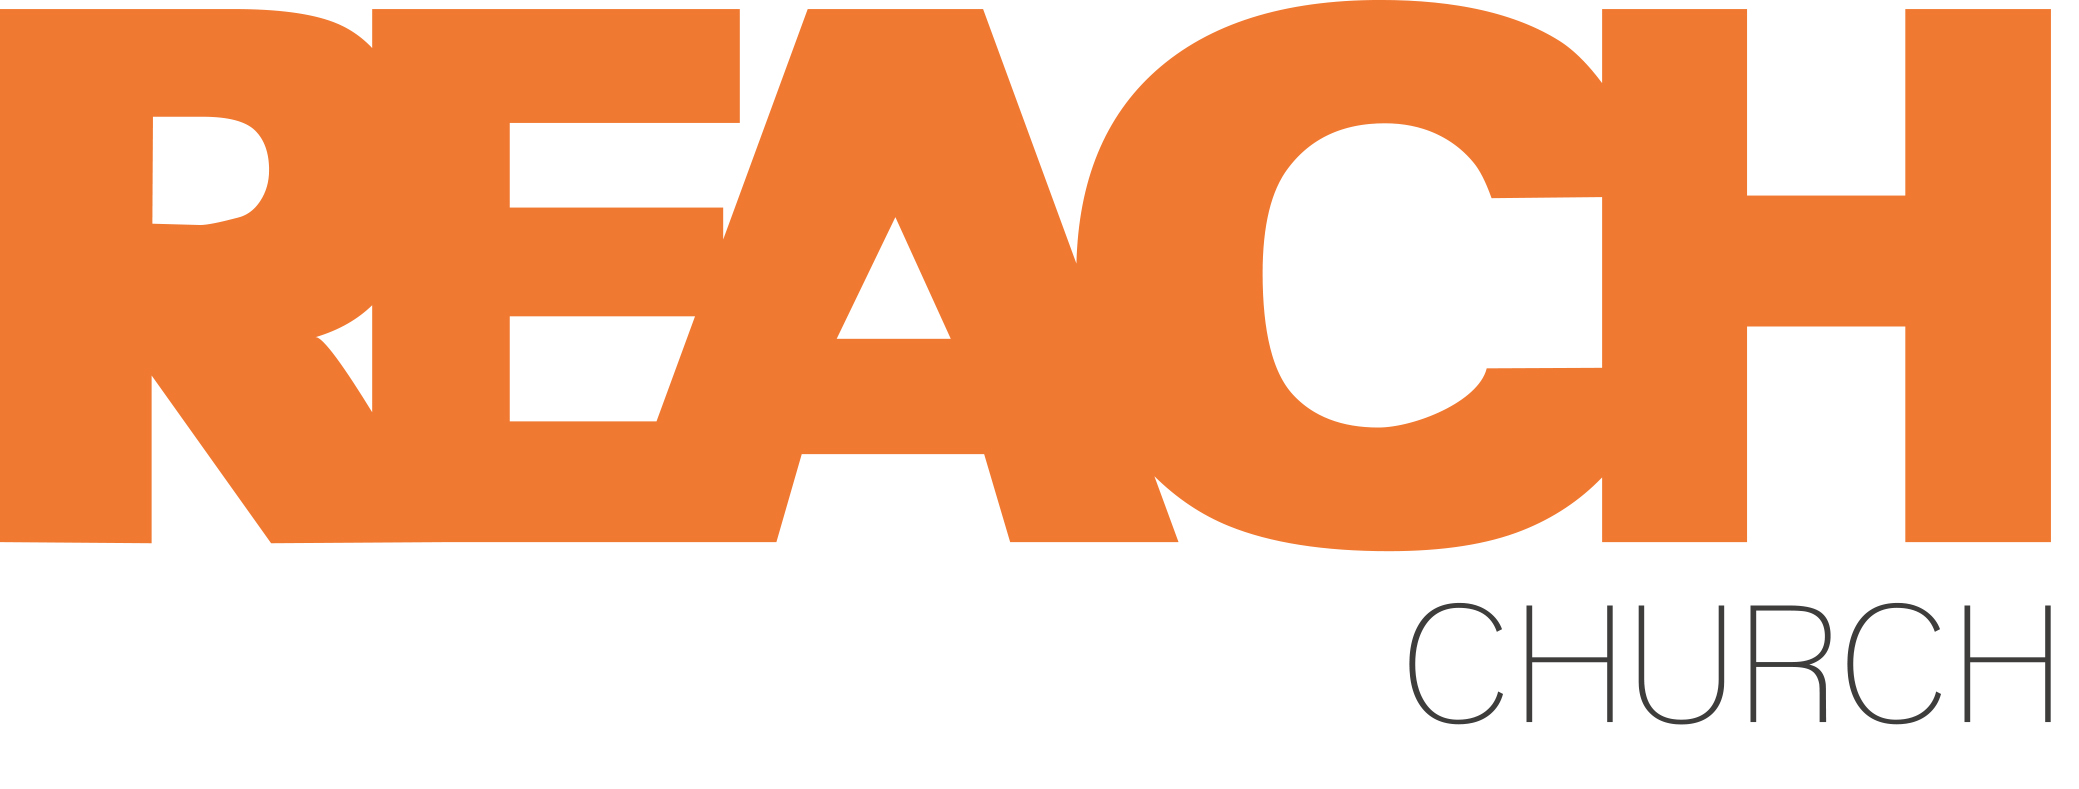 New Reach Logo Orange